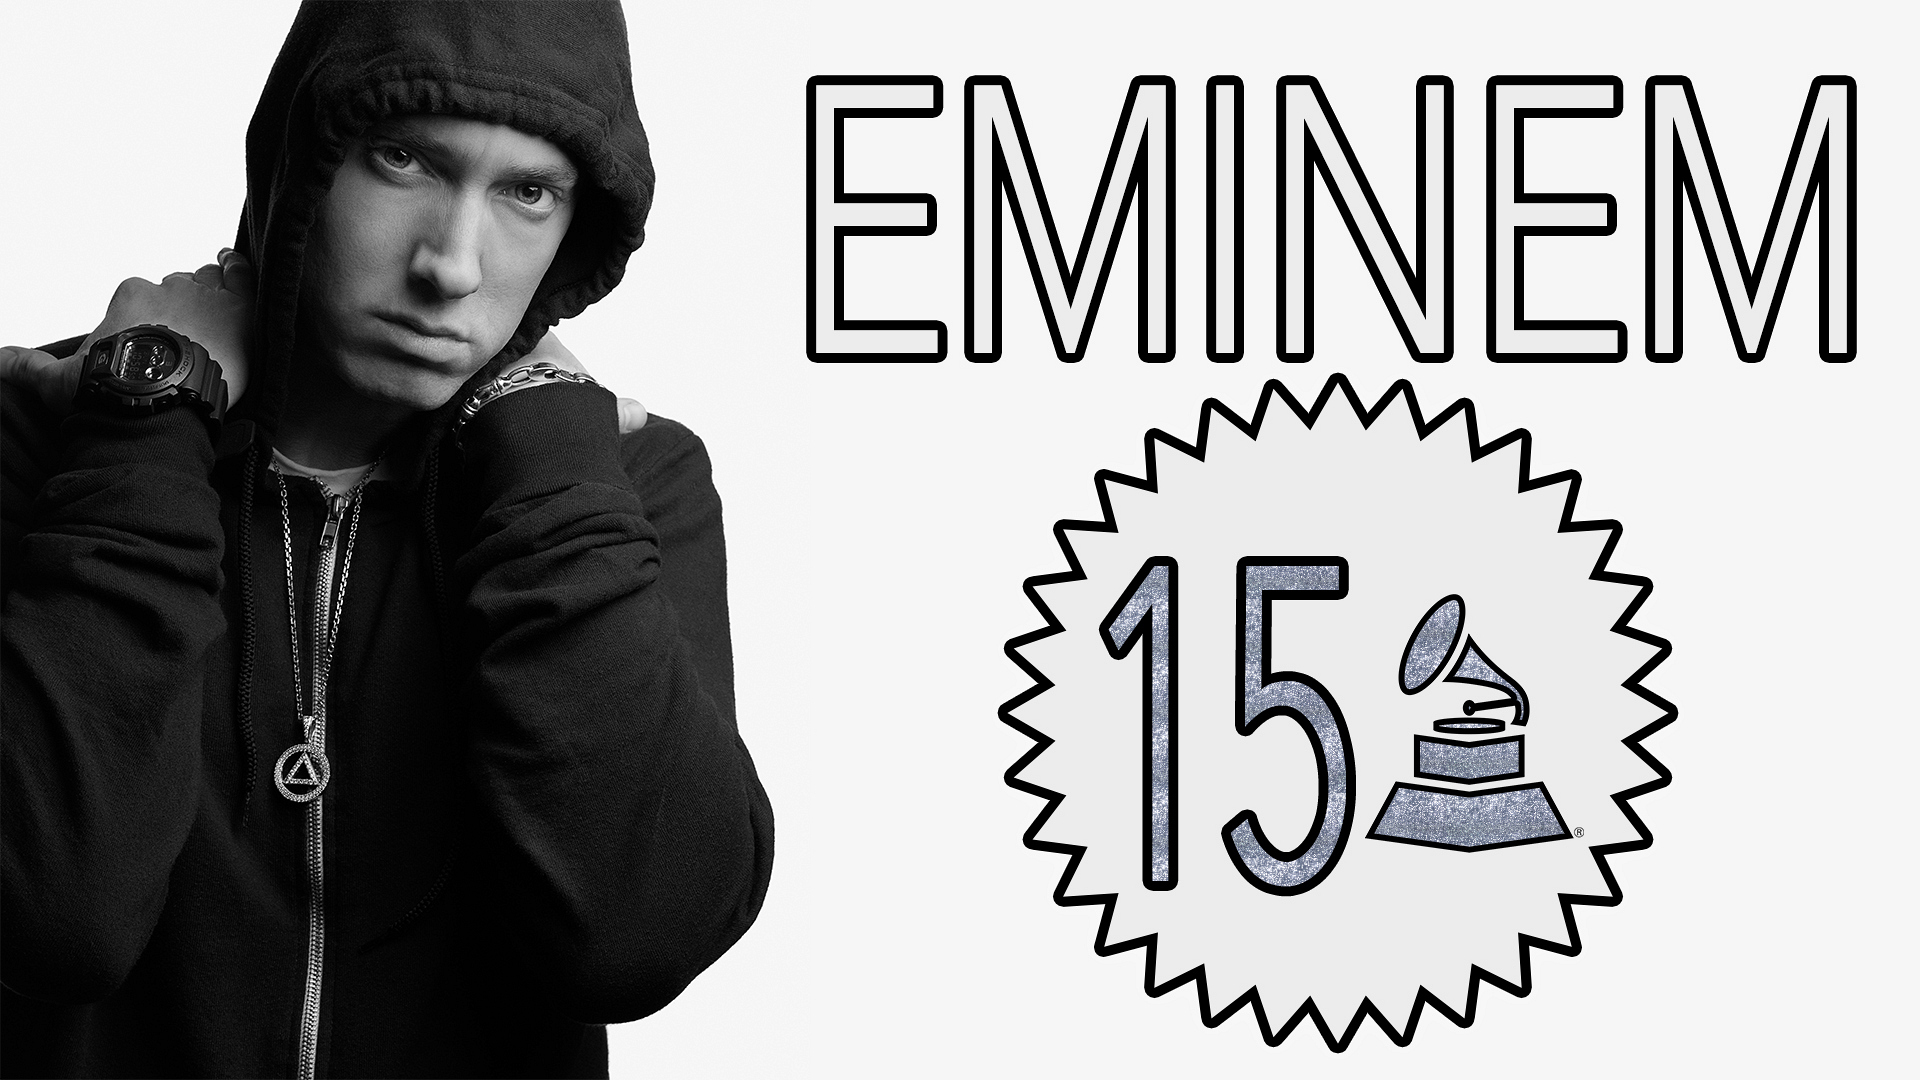 Eminem with 15 GRAMMY Awards